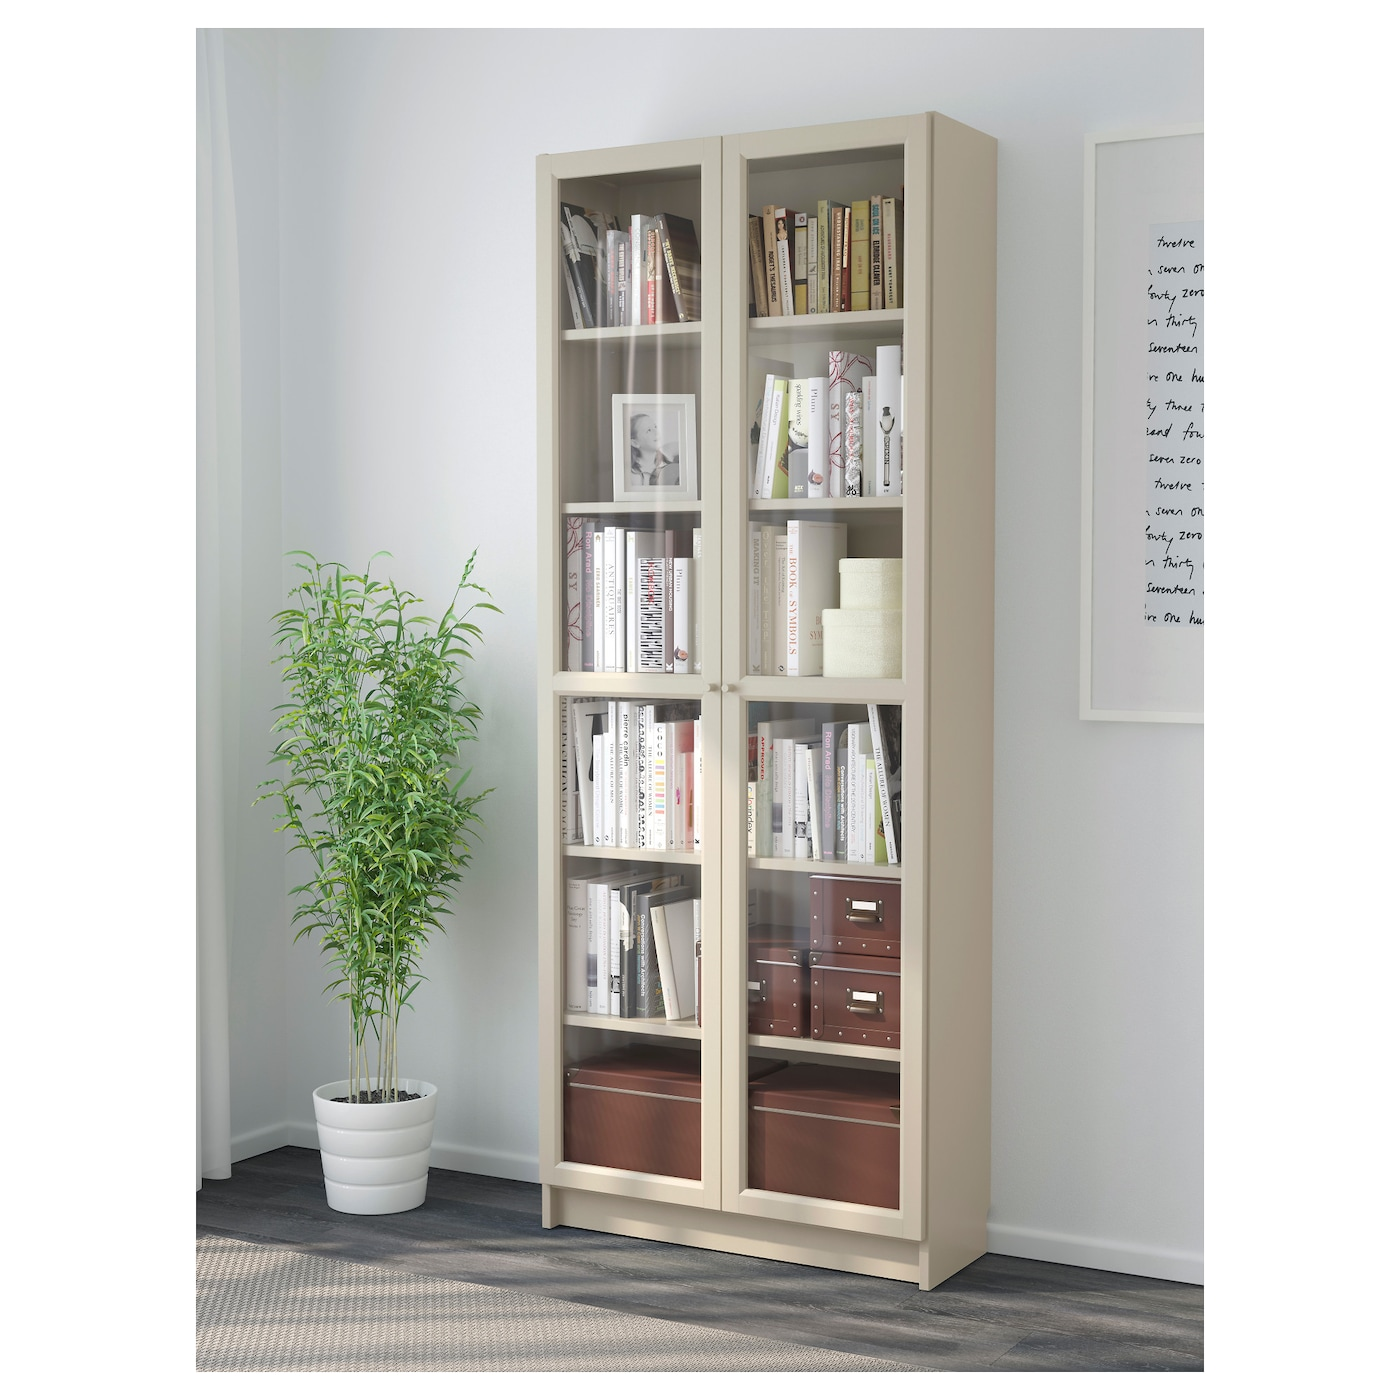 Glass Bookshelf Designs: BILLY Bookcase With Glass-doors Beige 80 X 30 X 202 Cm